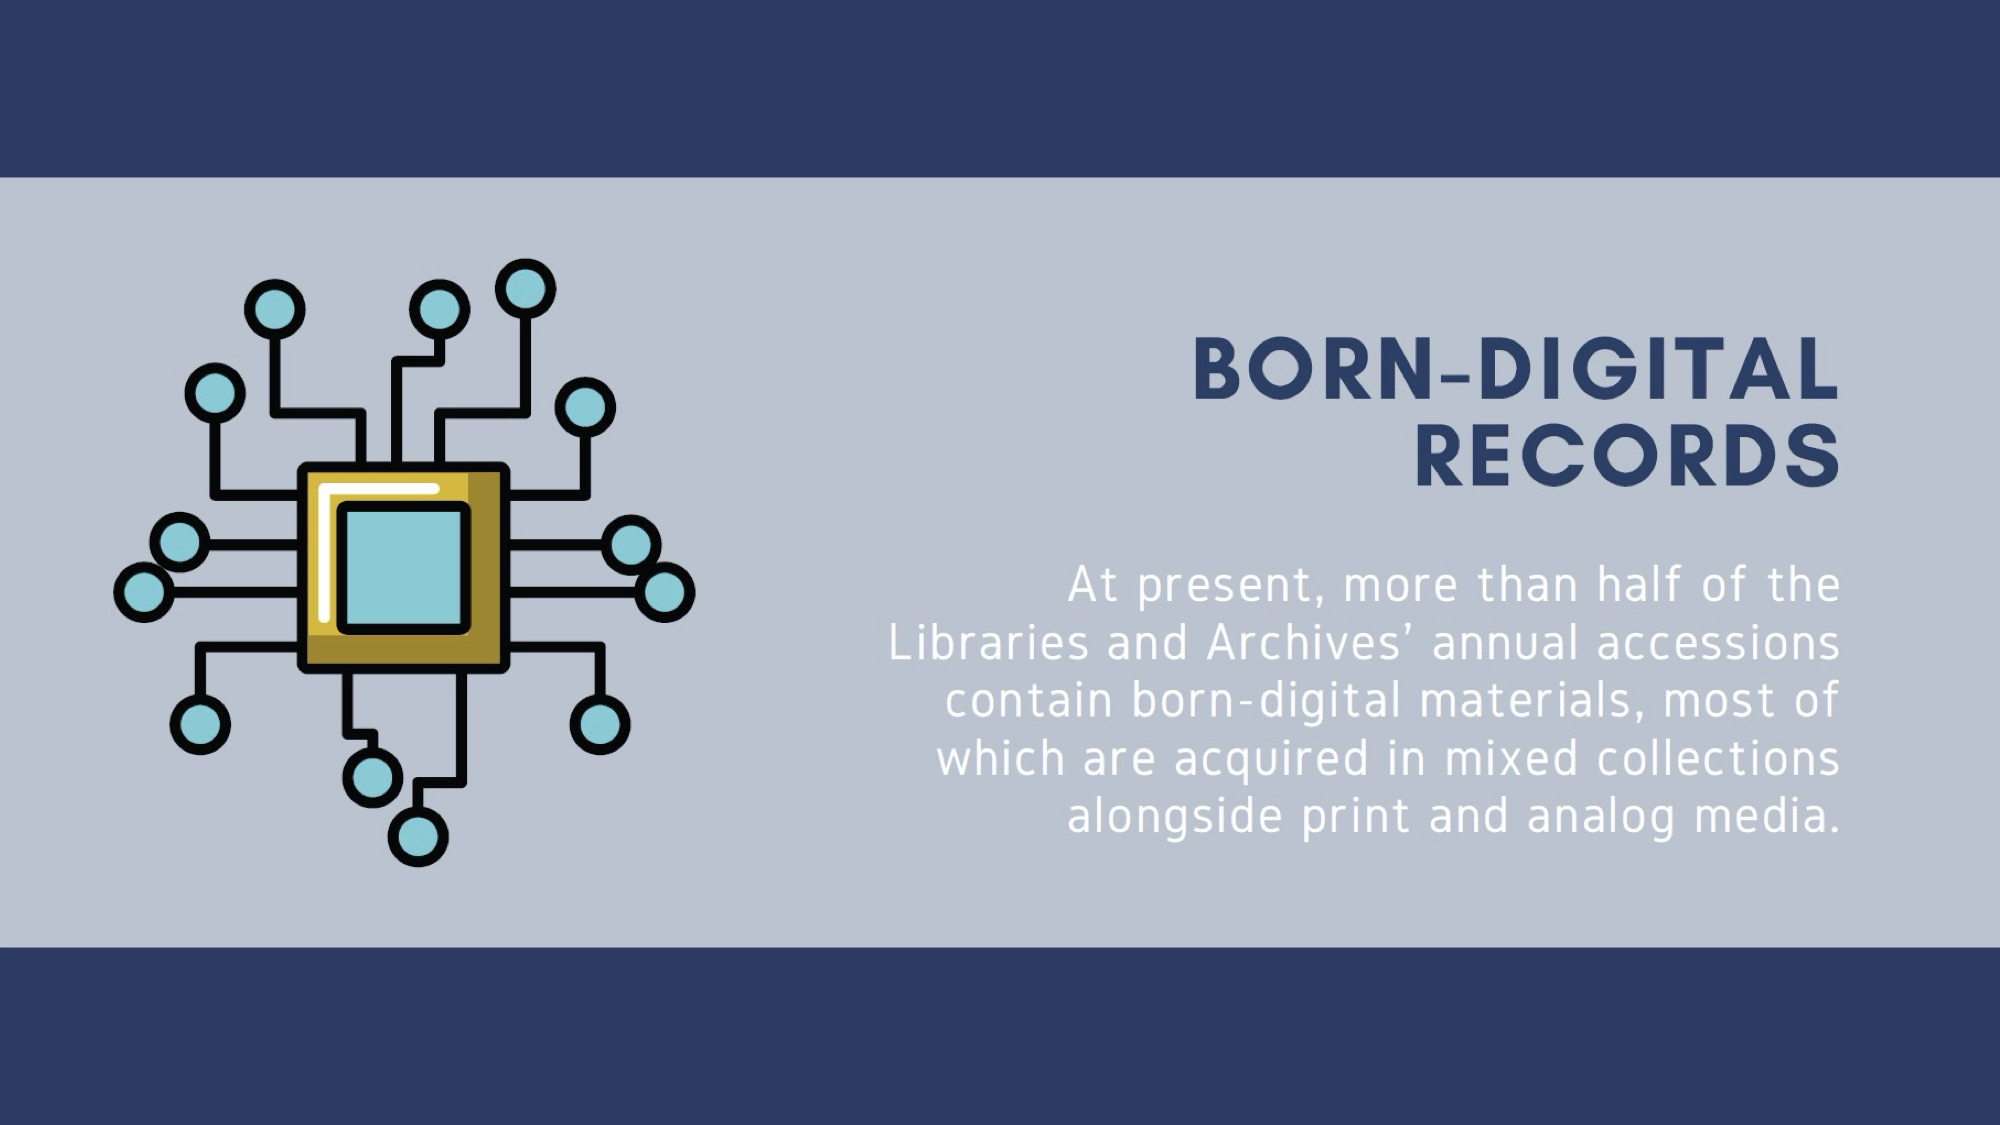 Slide 4: heading born-digital records pause body at present, more than half of the Libraries and Arc